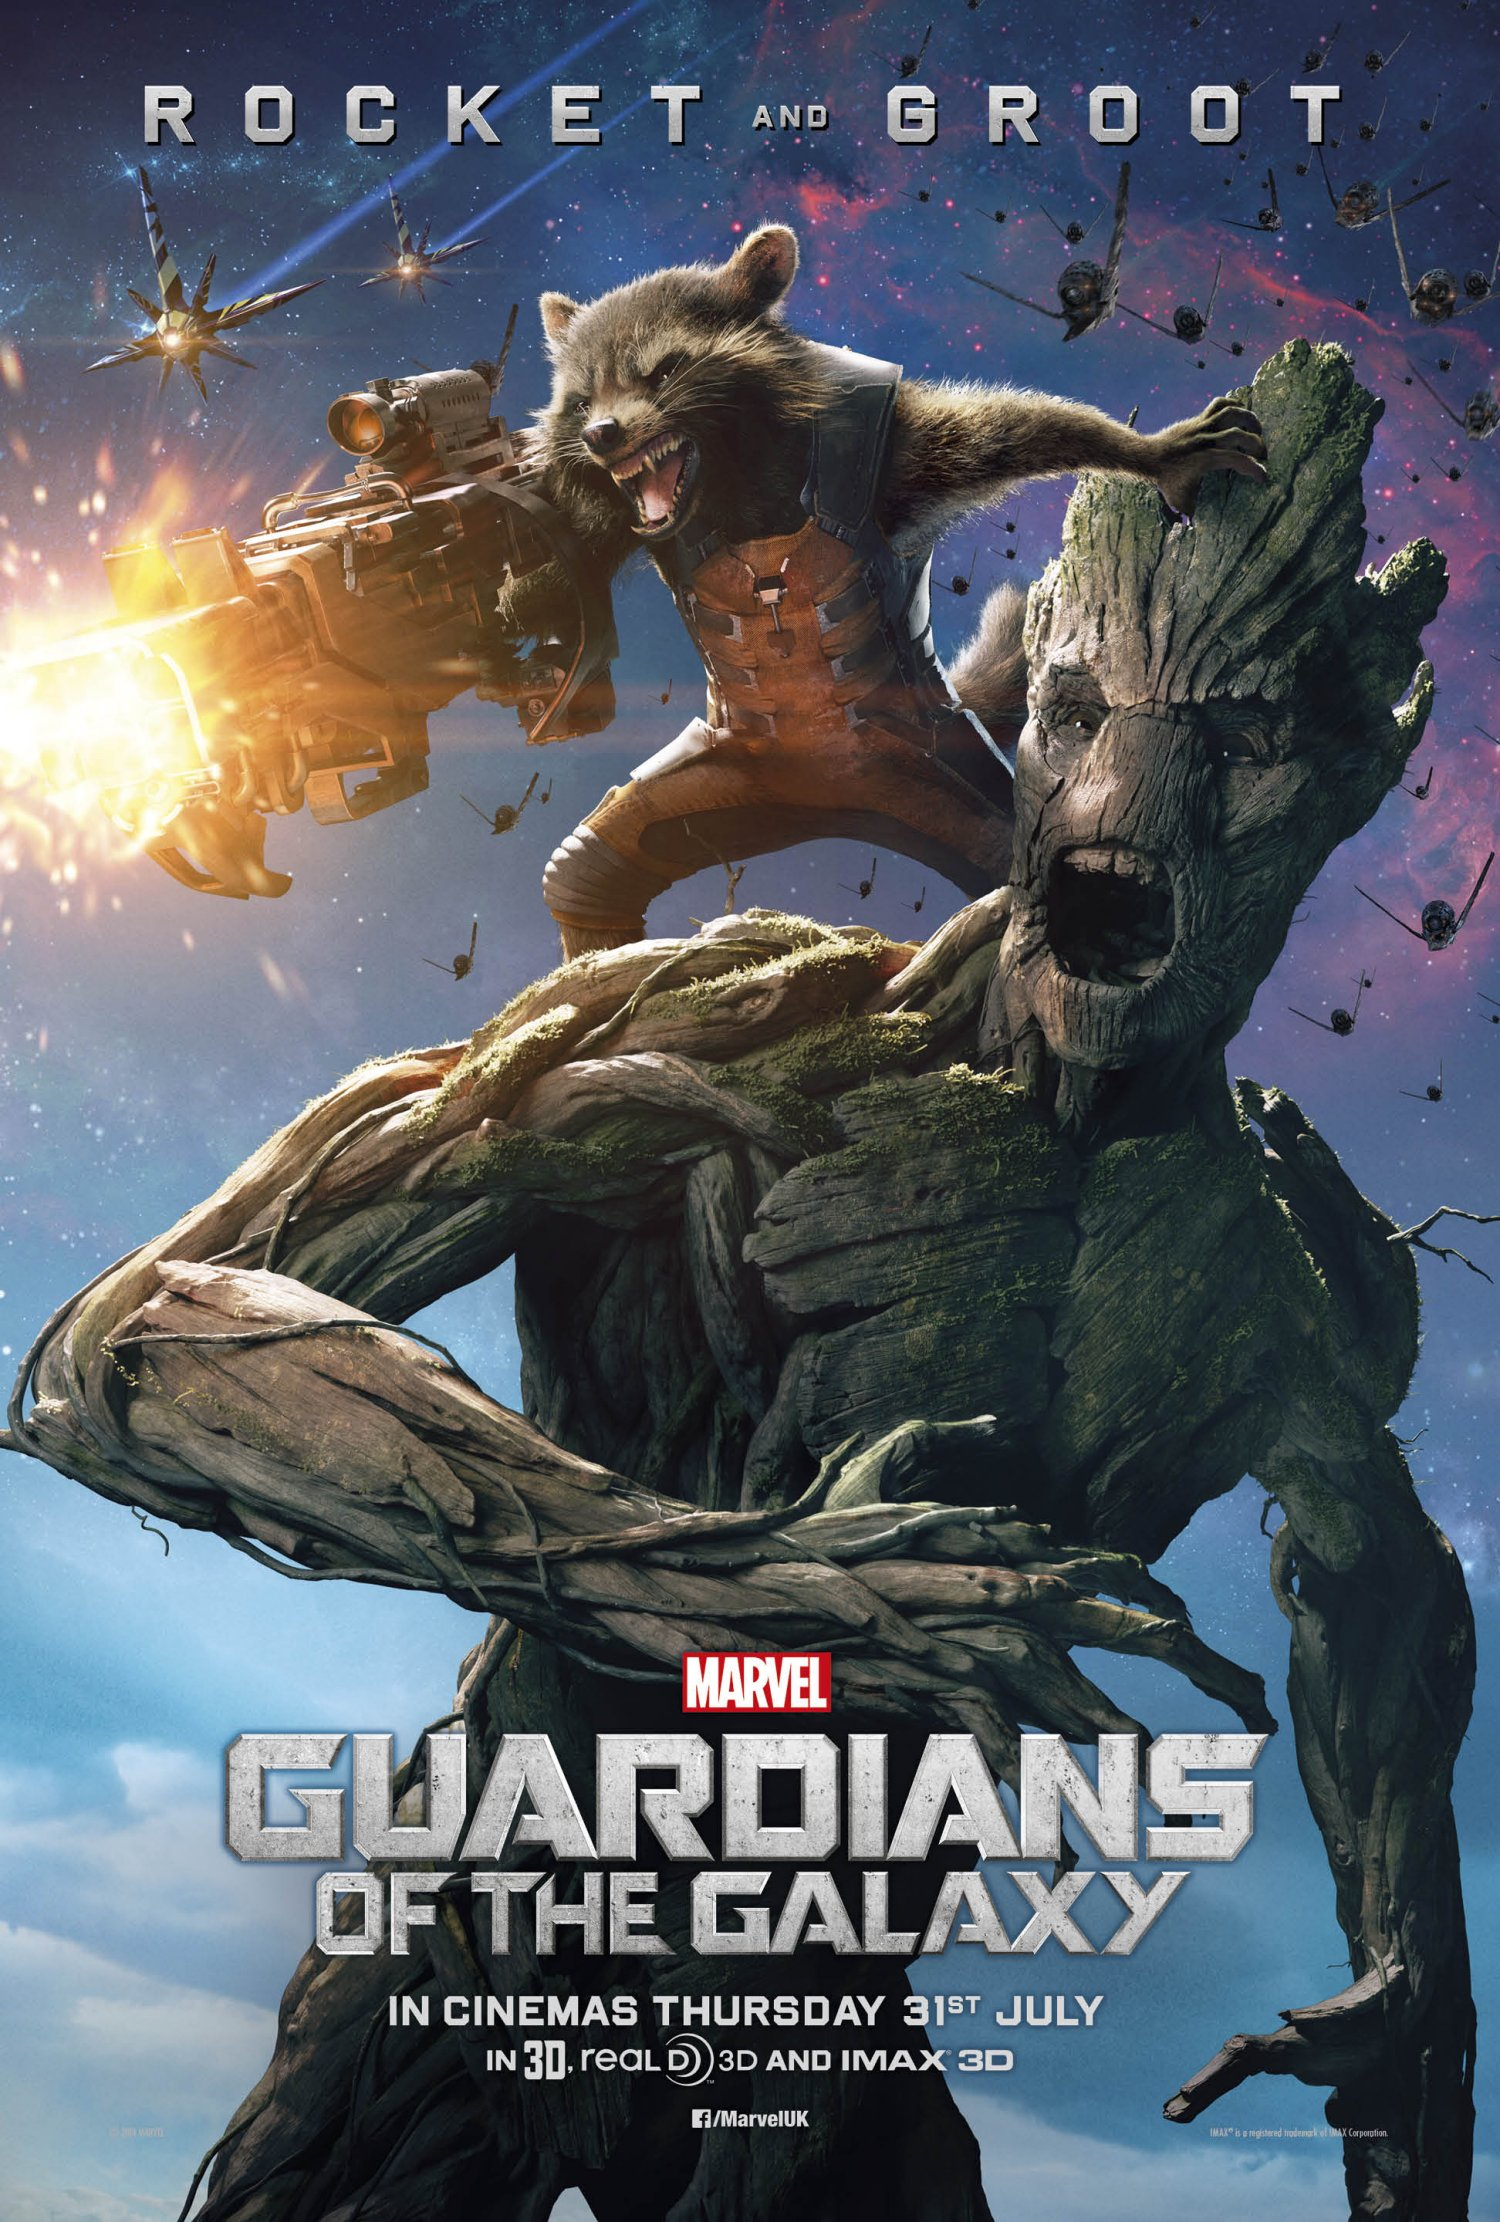 Guardians of the Galaxy – Groot and Rocket poster